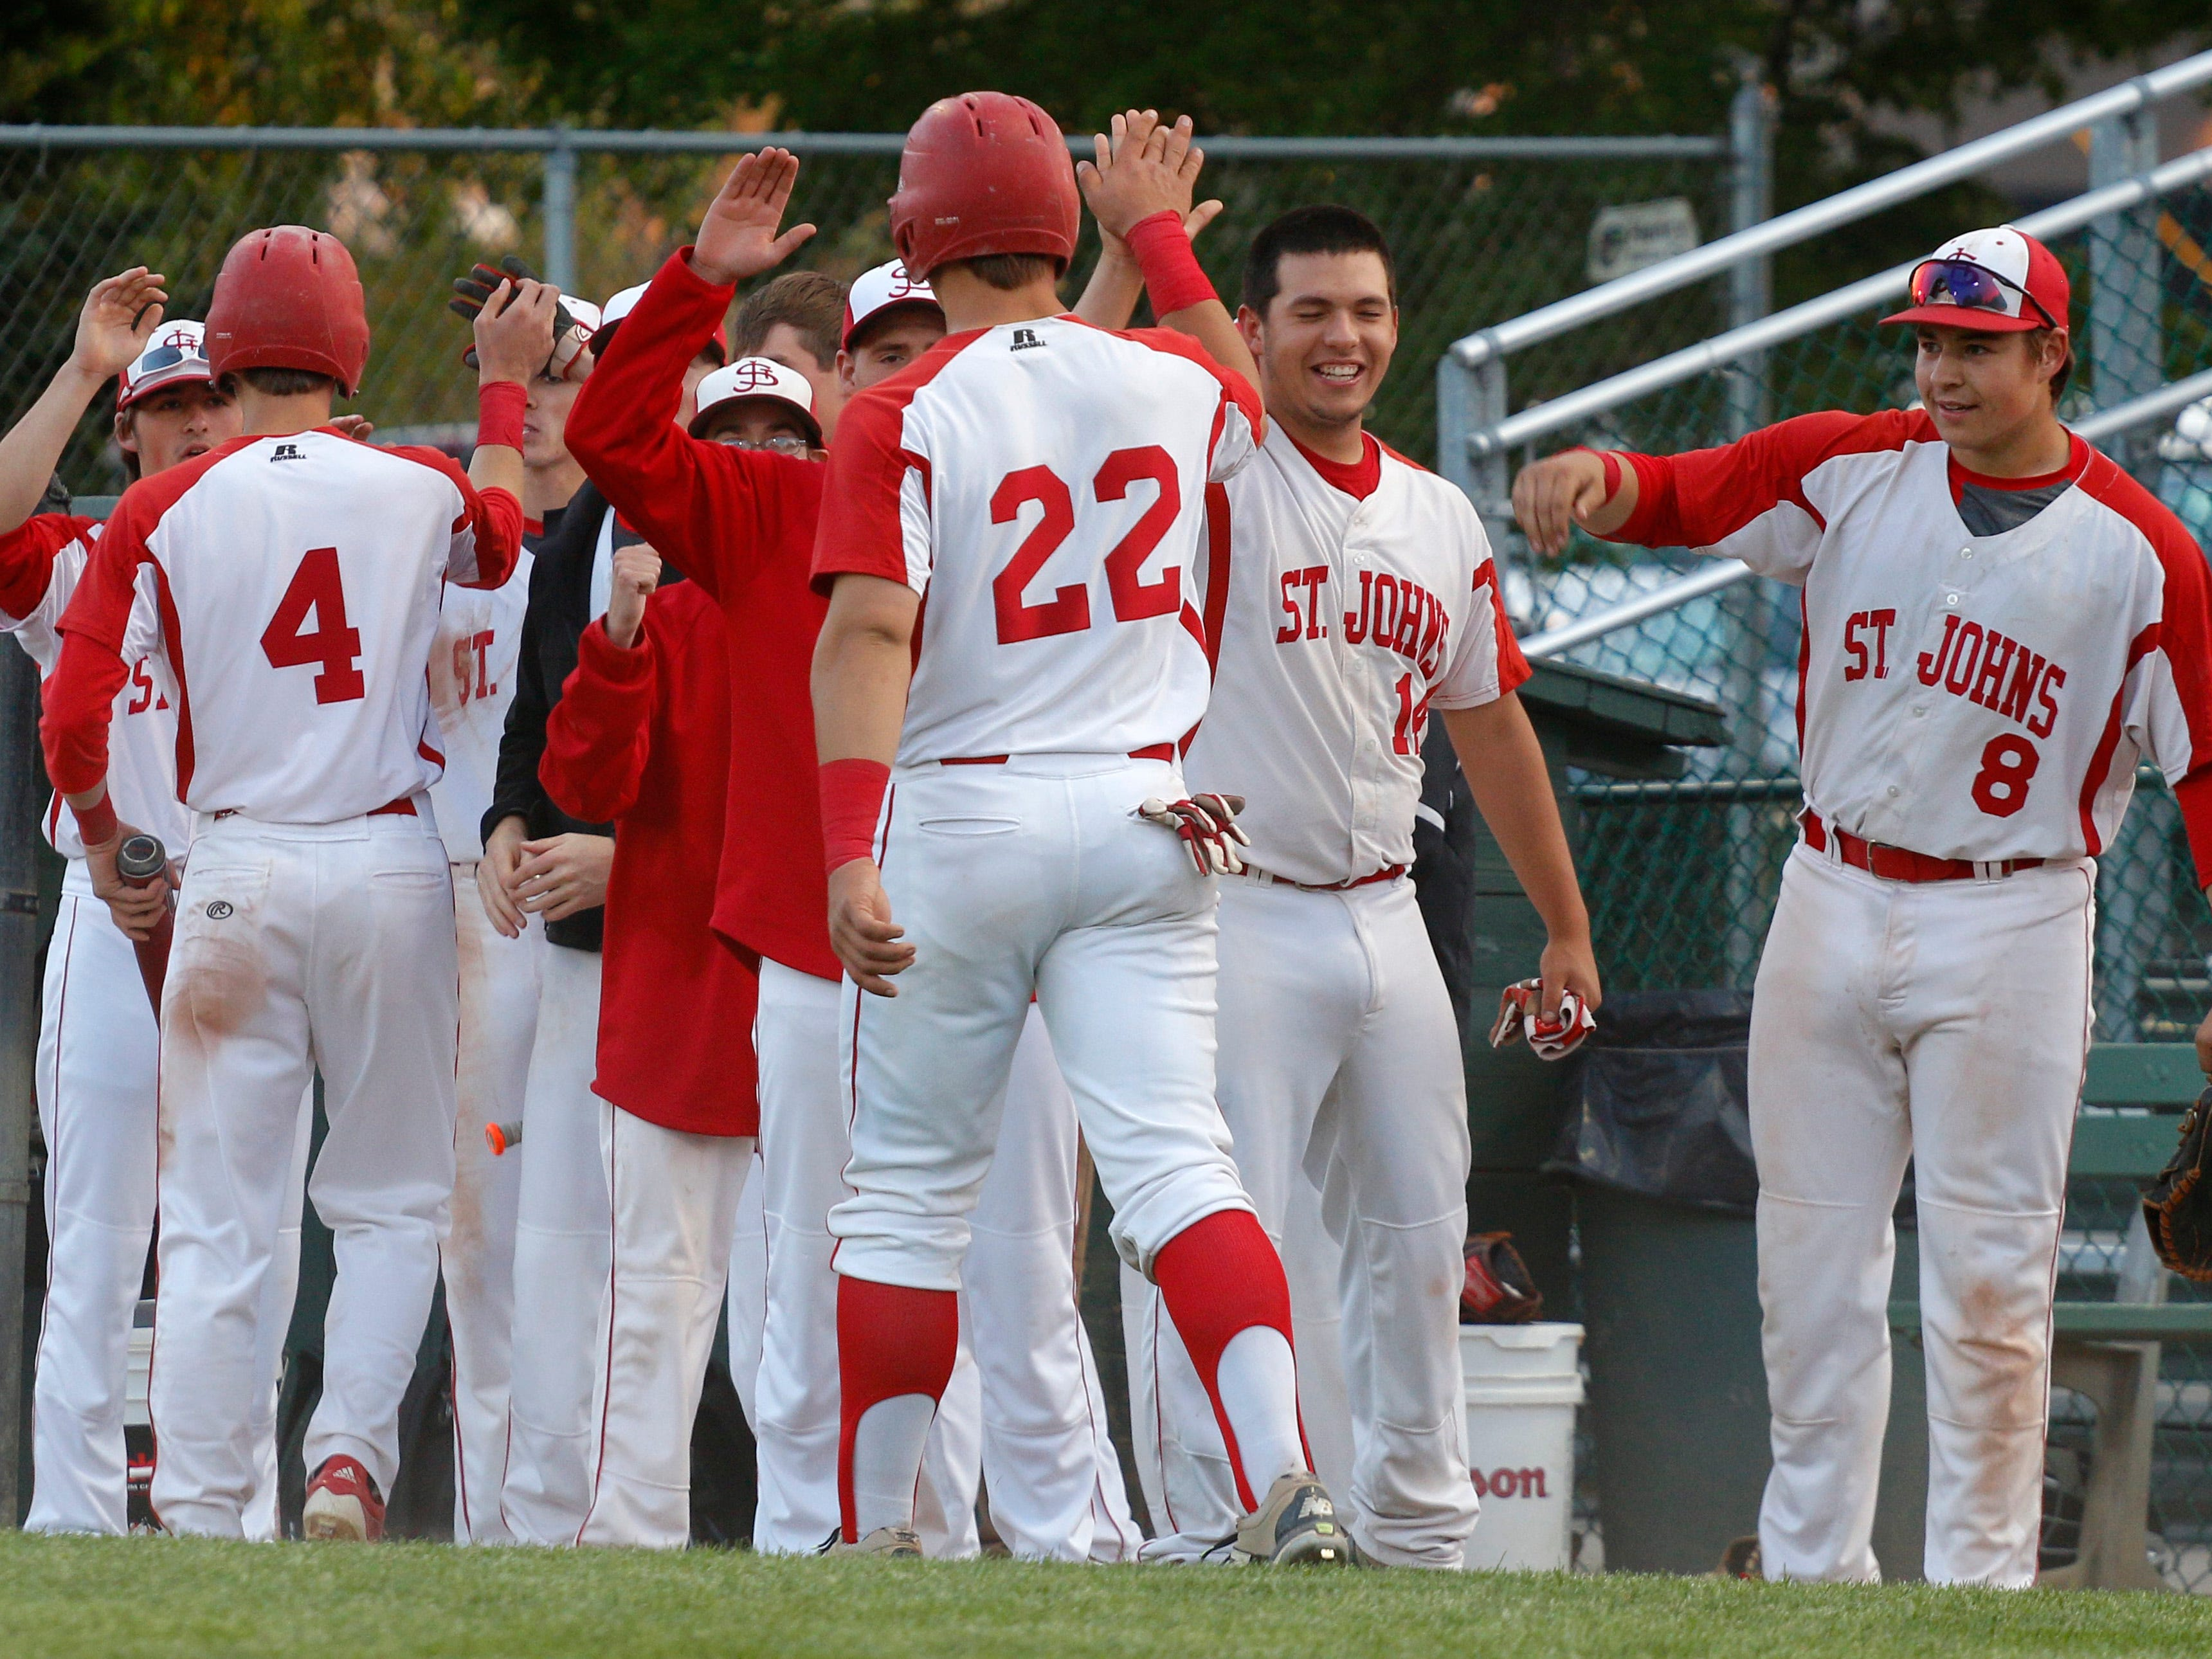 St. Johns' Alex Hudak (4) and Adam Proctor (22) are congratulated after scoring against Haslett during their Diamond Classic game Thursday, May 21, 2015, in Lansing, Mich.